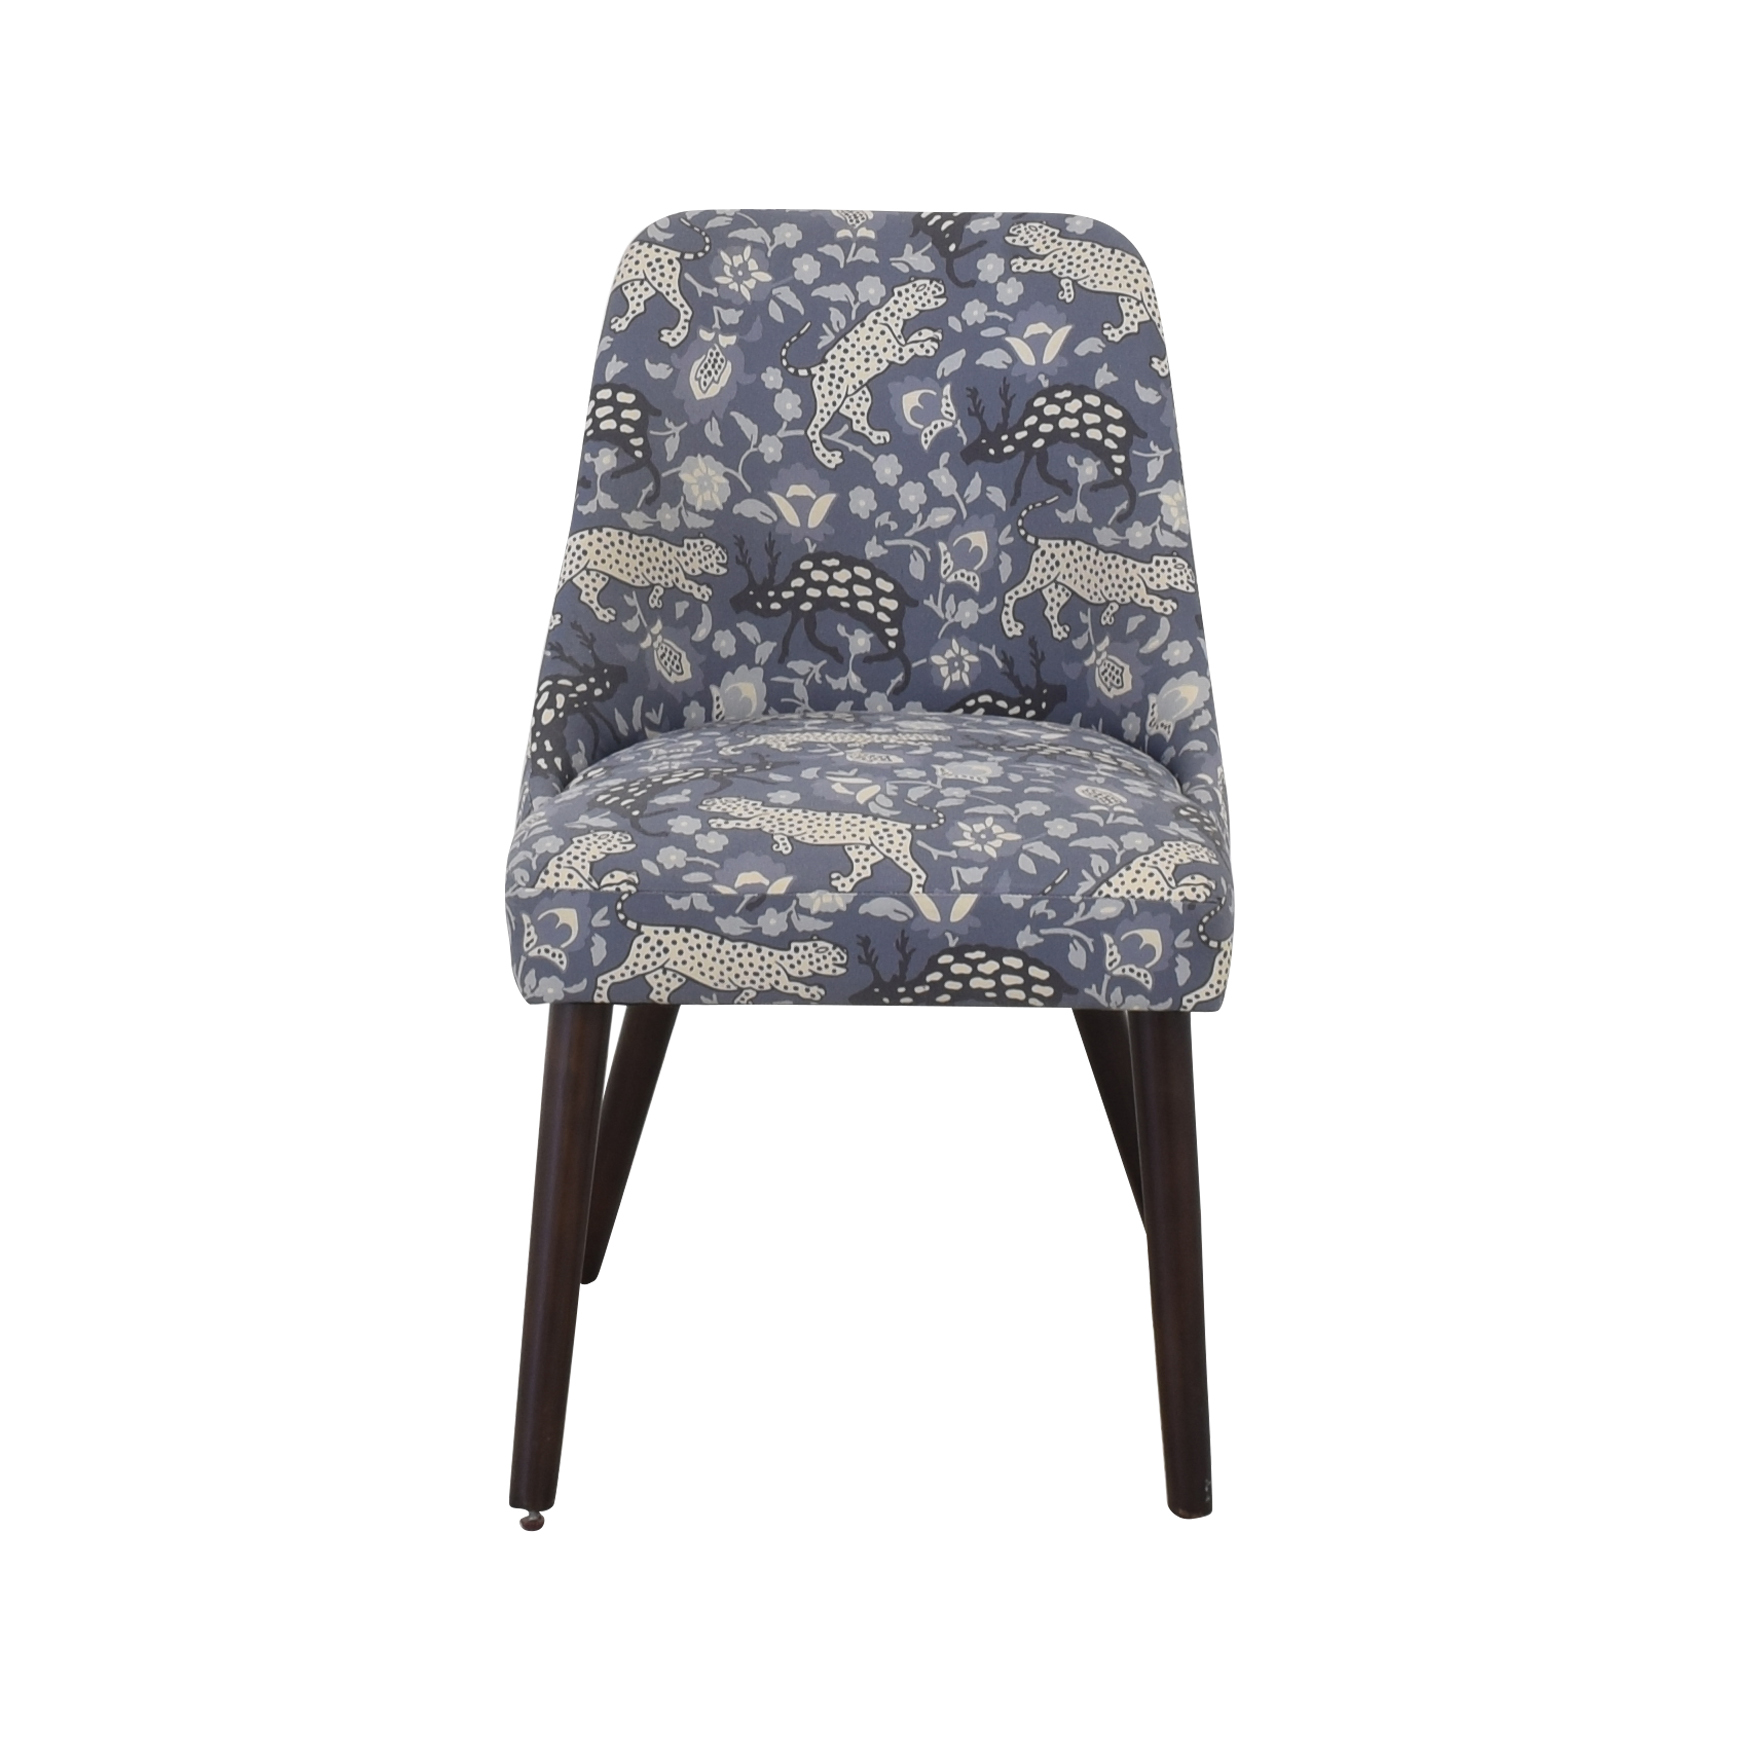 Skyline Furniture Skyline Patterned Upholstered Dining Chair ct